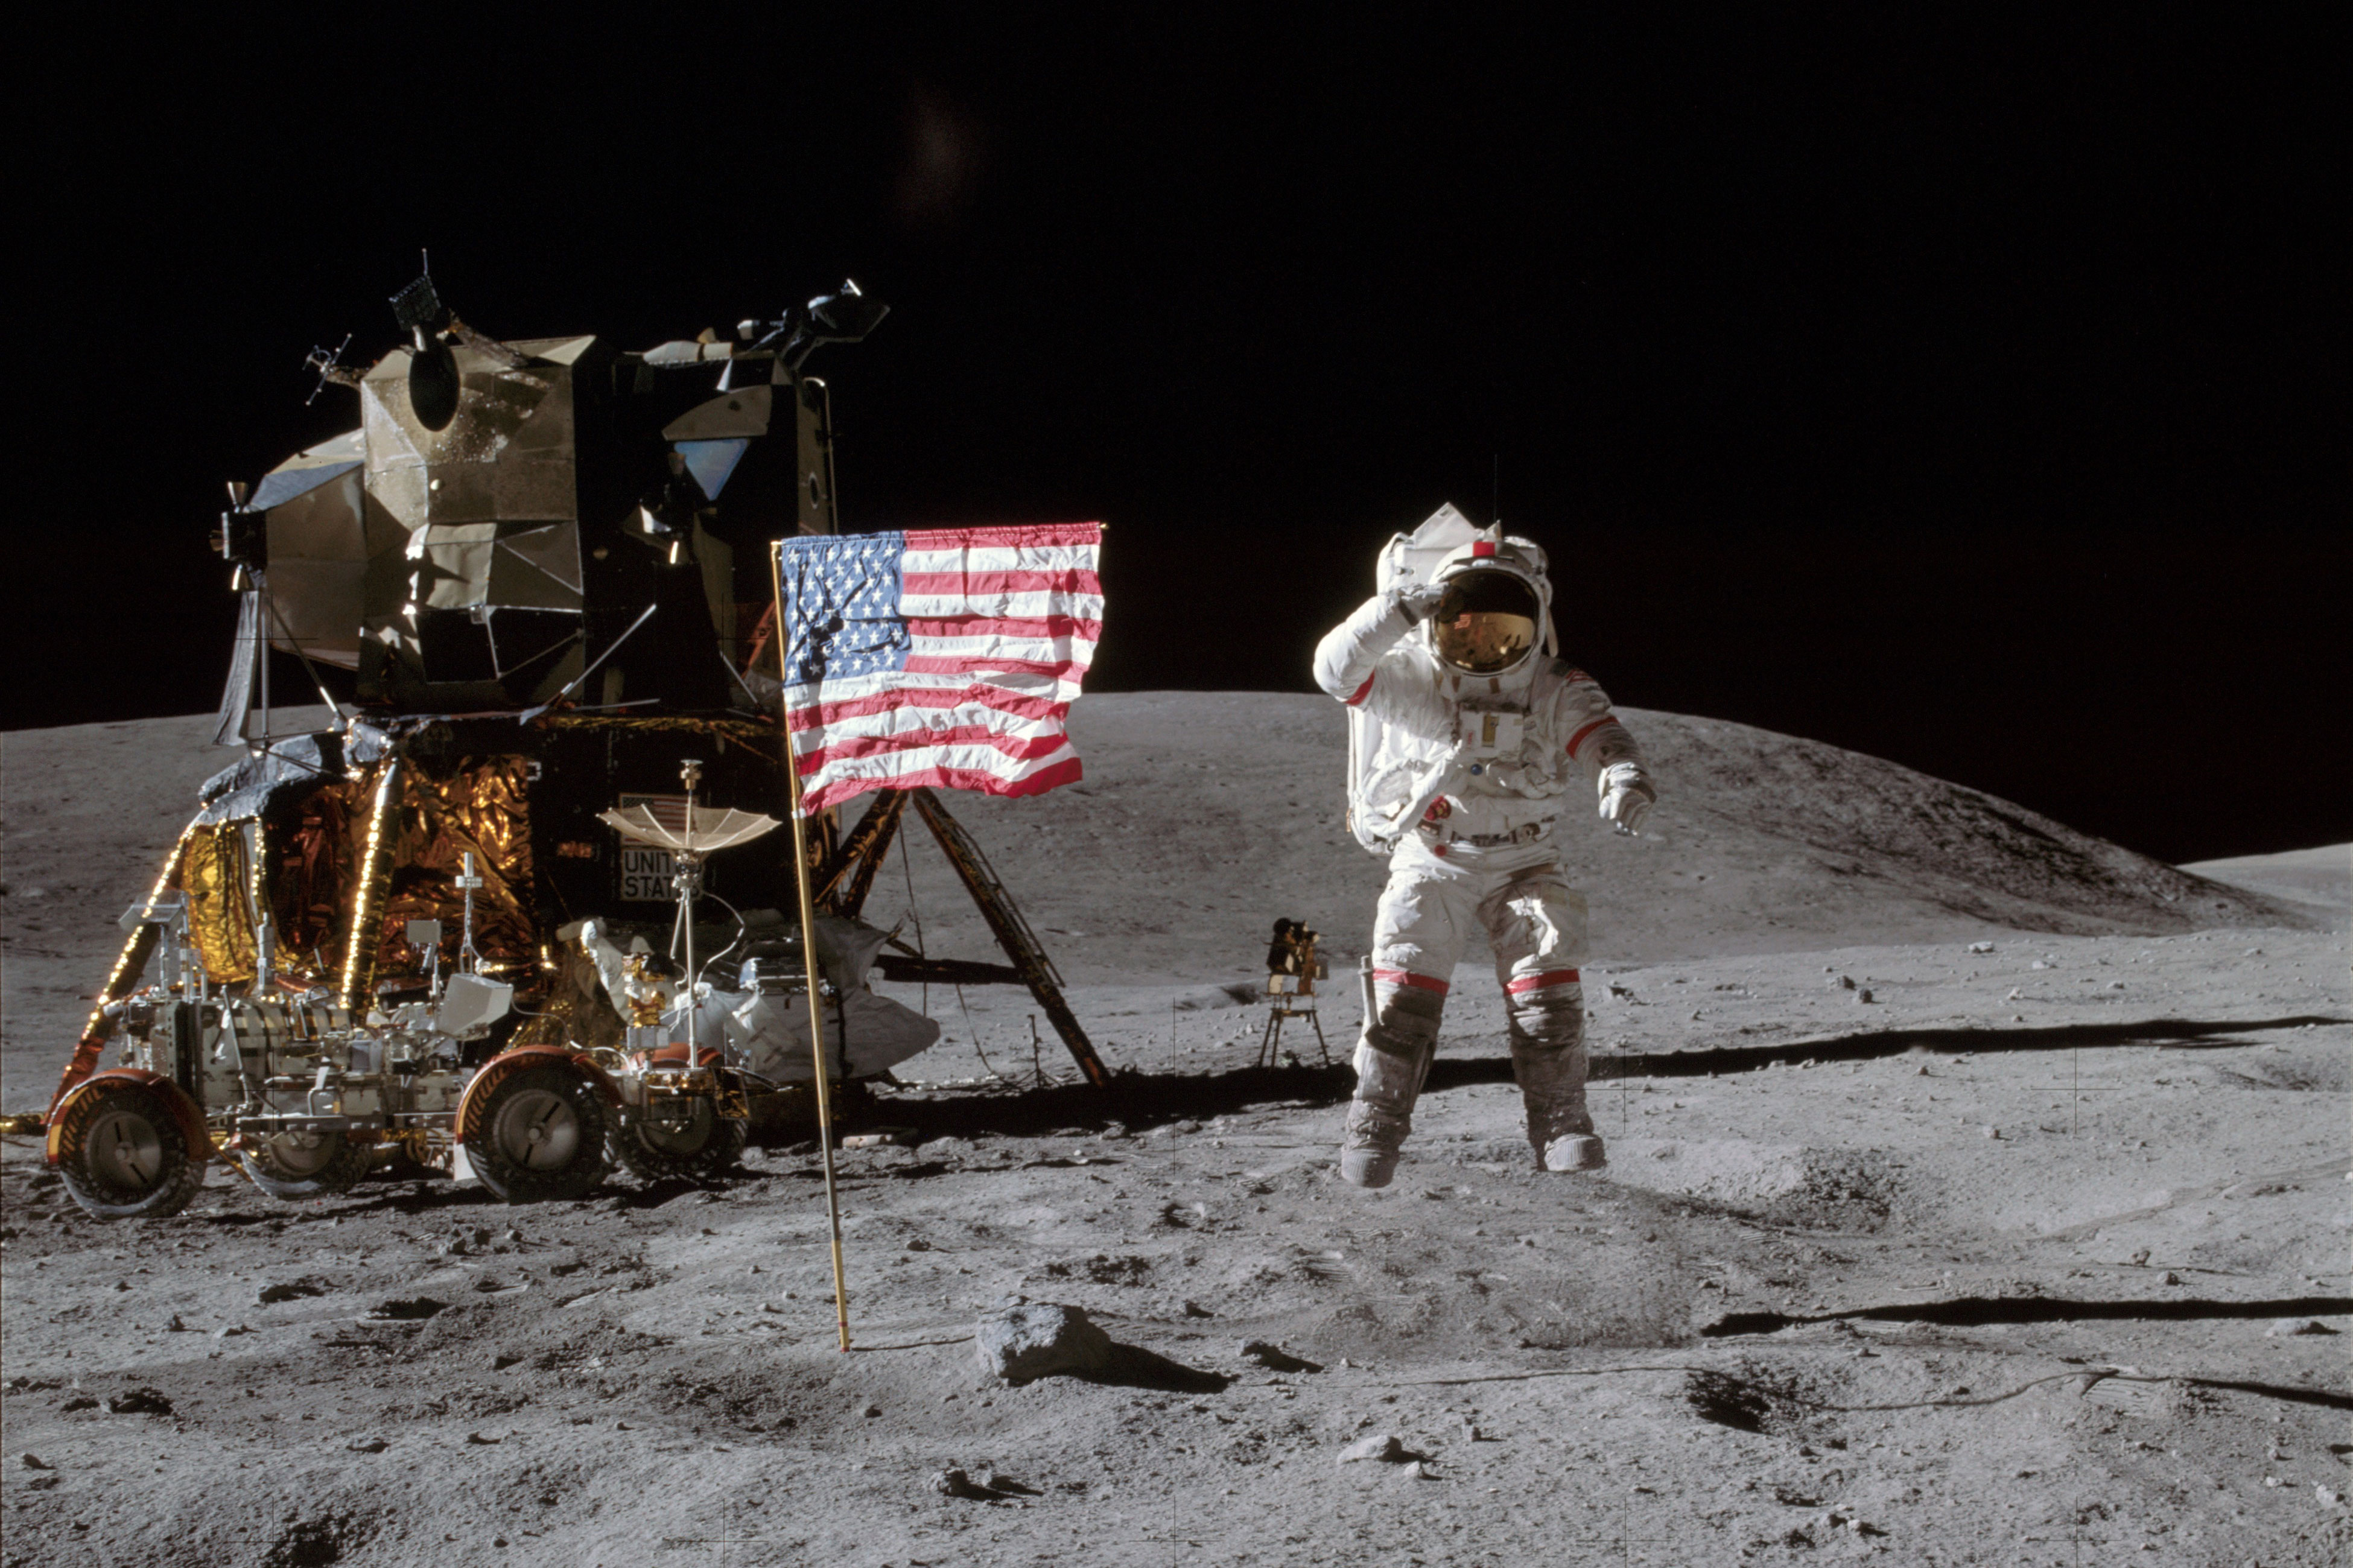 <p>Astronaut John W. Young, commander of the Apollo 16 lunar landing mission, leaps from the lunar surface as he salutes the United States flag at the Descartes landing site for Apollo 16, April 20, 1972.</p>